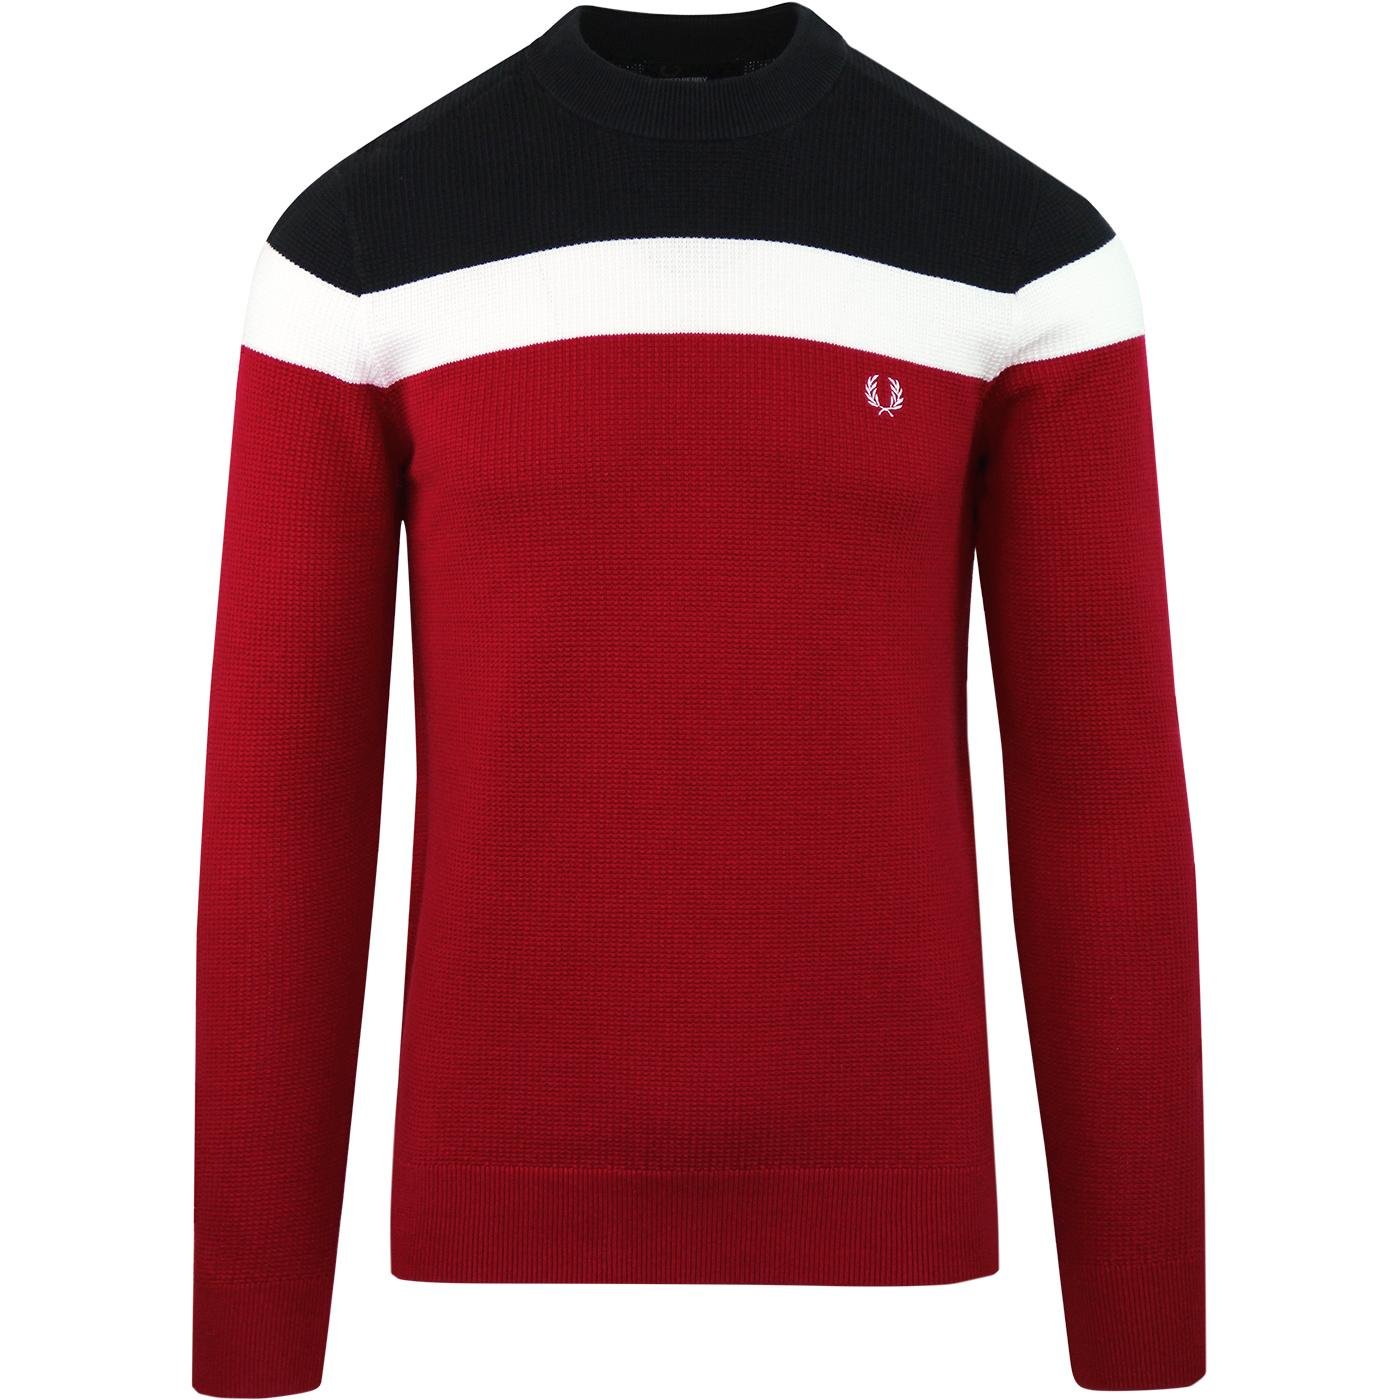 FRED PERRY Retro Mod Colour Block Crew Jumper RED